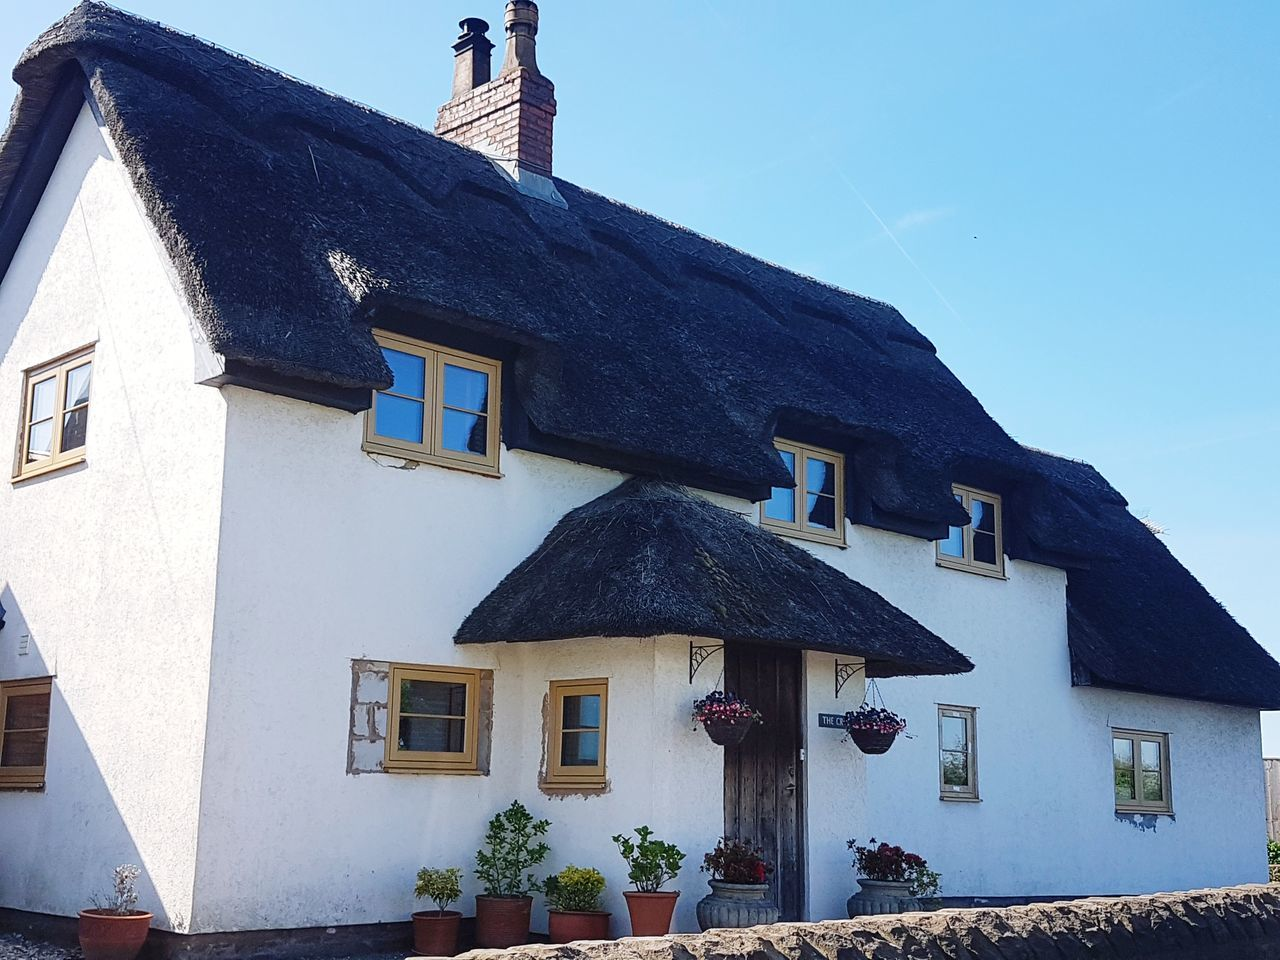 Thatched Roof Thatched Cottage Country Cottage Thatched House White House White Houses In Landscape Architecture House Building Exterior Built Structure Outdoors Roof No People Sky Blue Sky Clear Sky Beautiful Spring Day Beautiful Day Shadows & Lights Shadow And Light Day